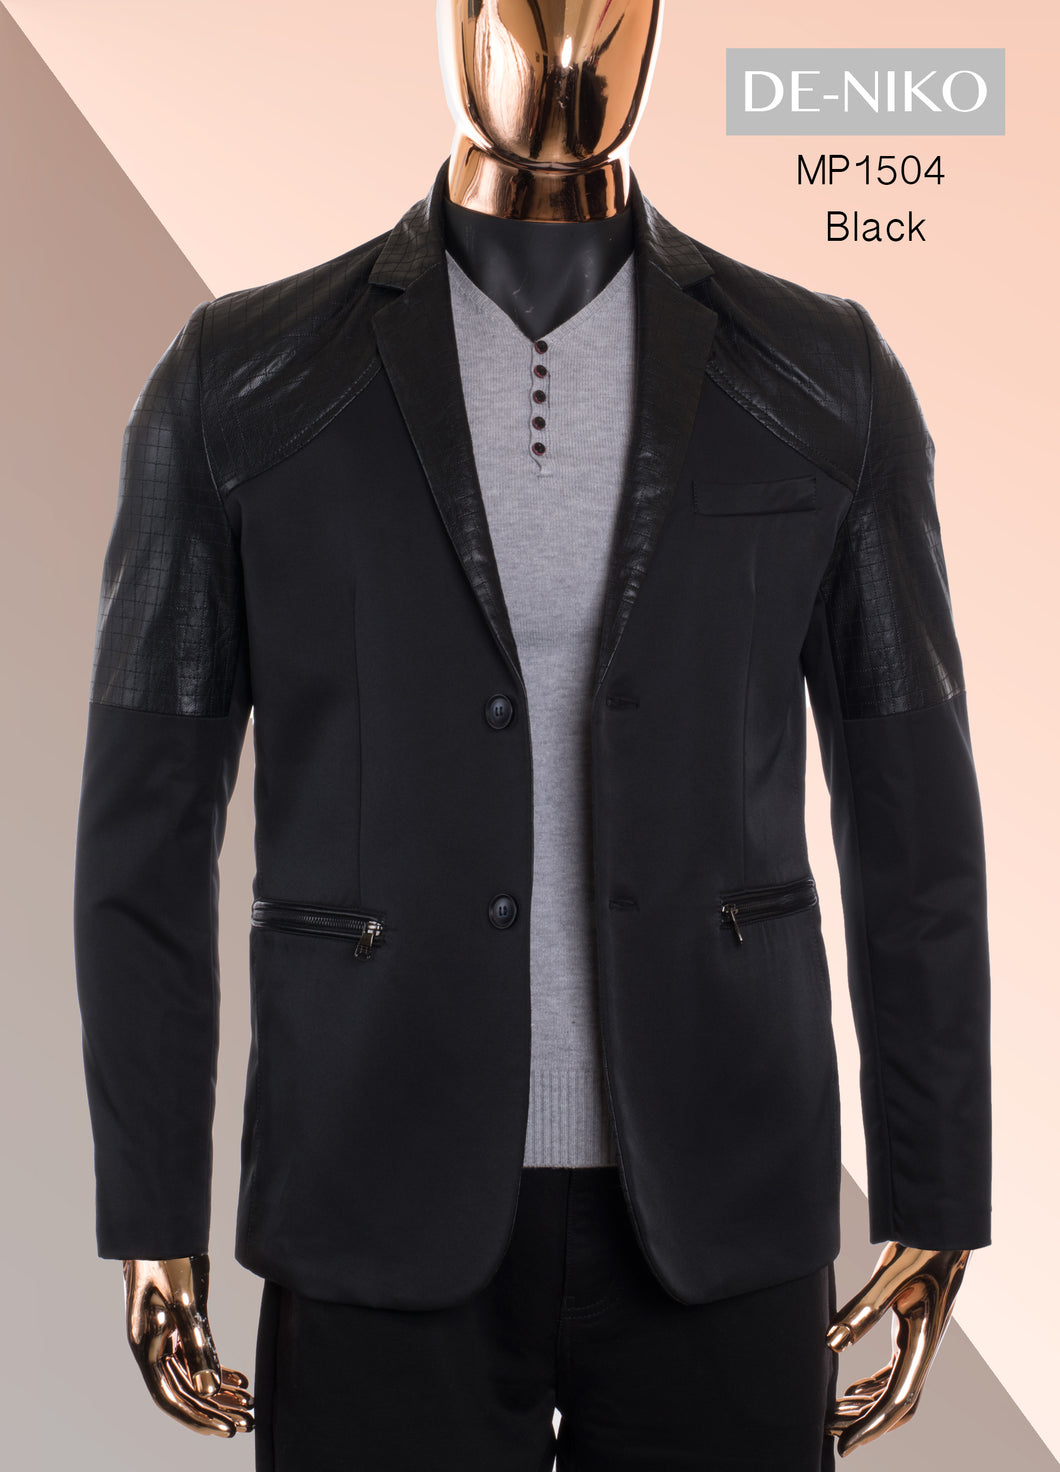 De-Niko Black Button Up Sports Coat Jacket With Black Faux Leather Accents